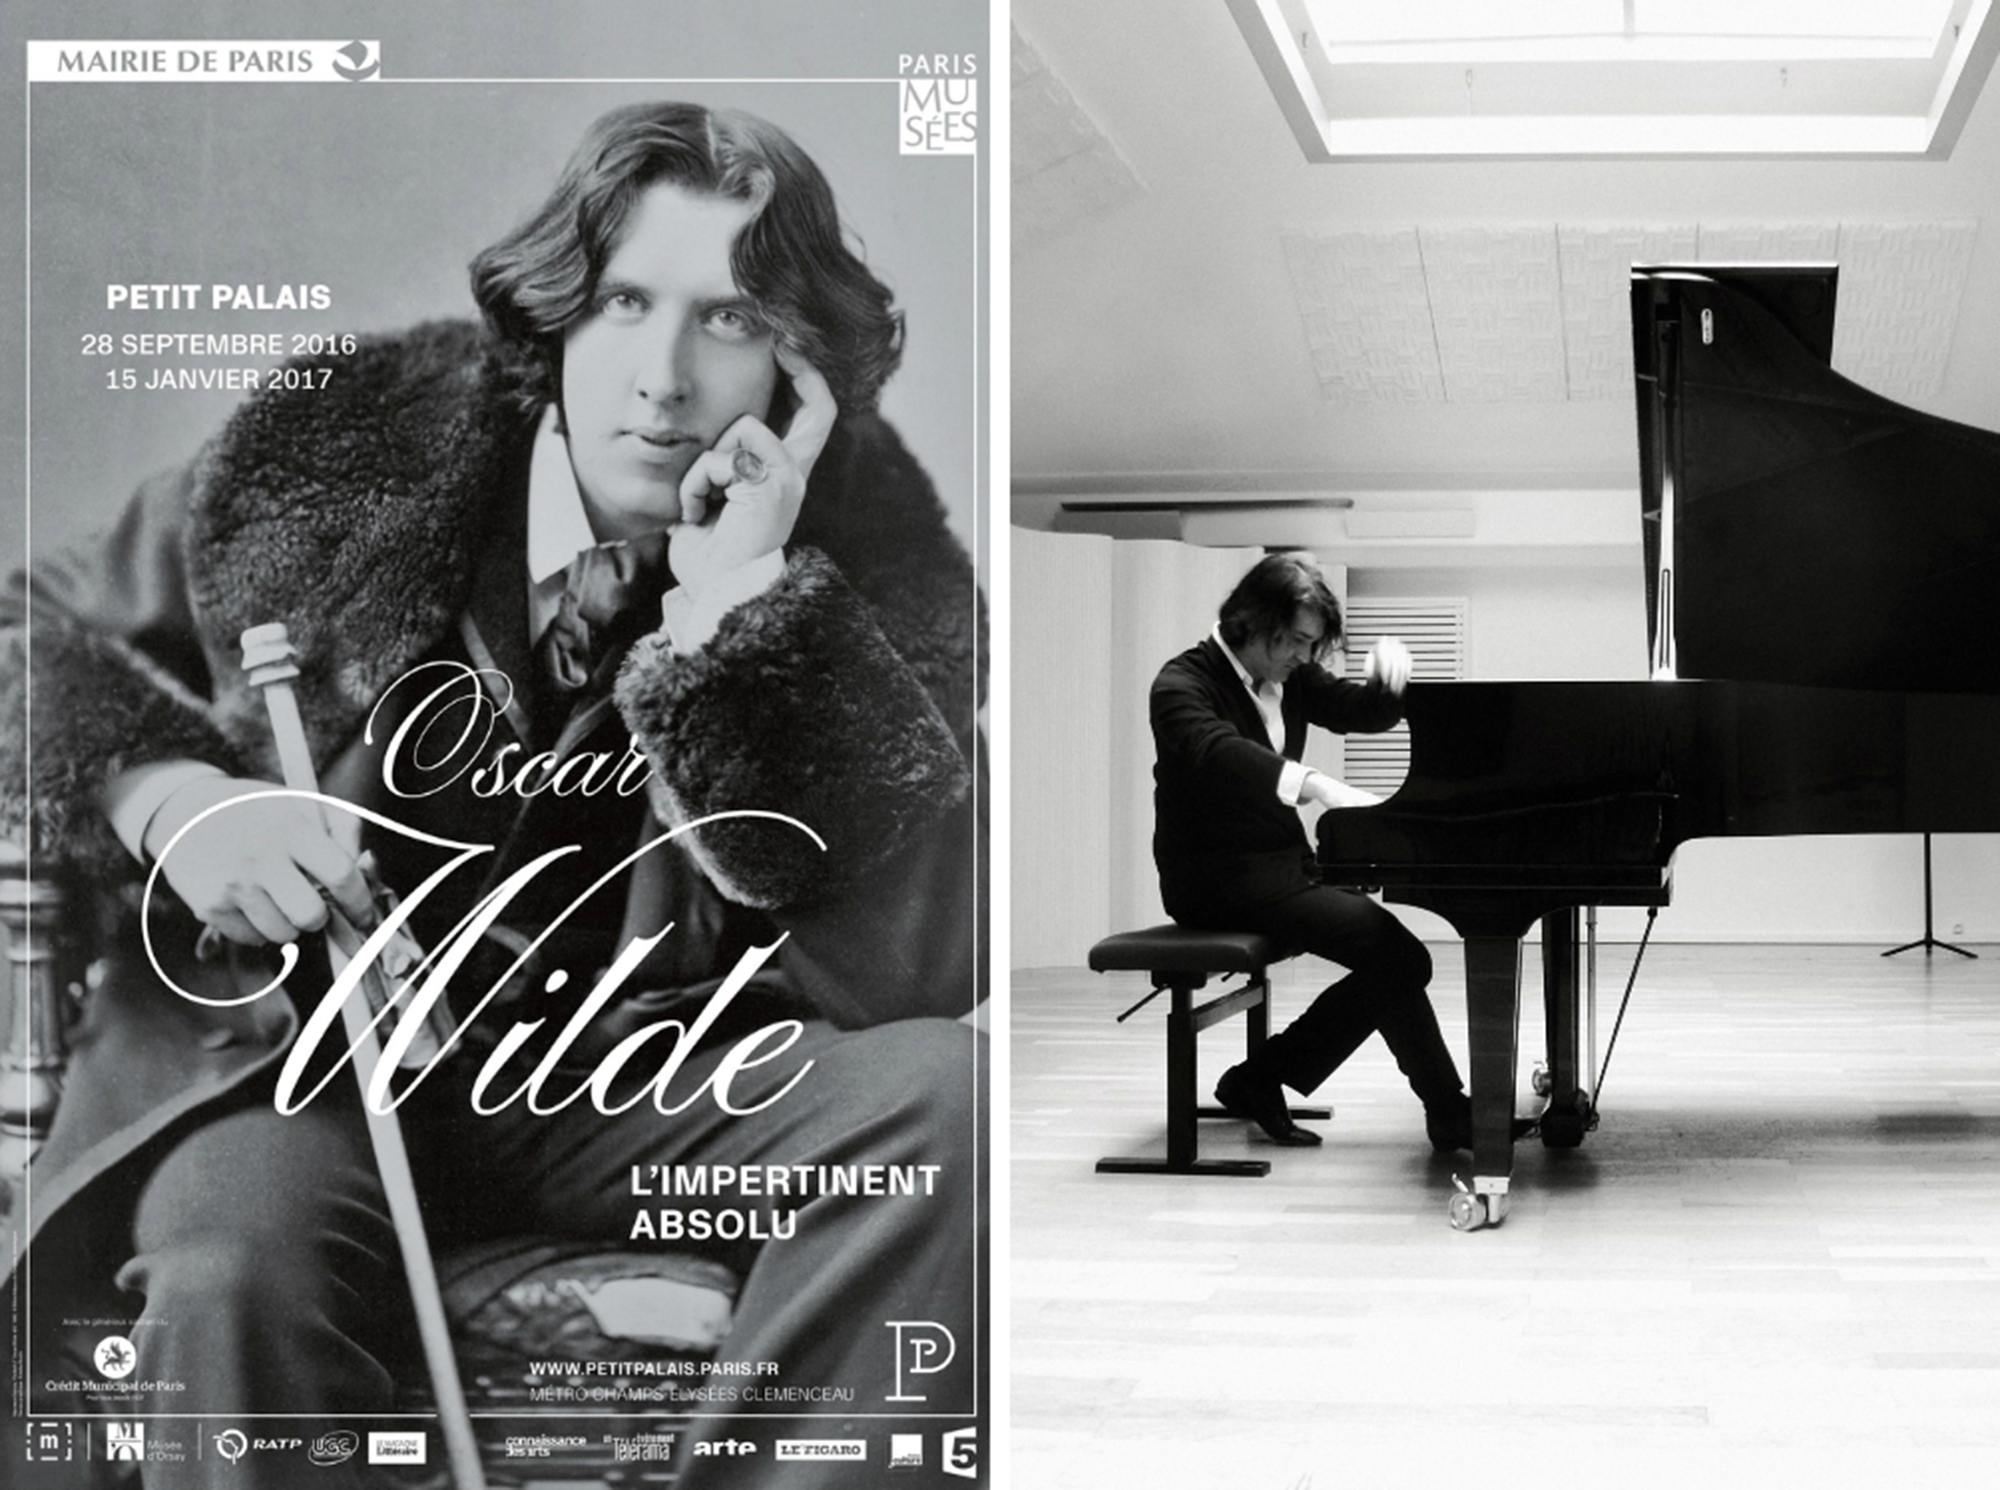 Oscar Wilde L'impertinant absolu at Petit Palais & Maxence Cyrin